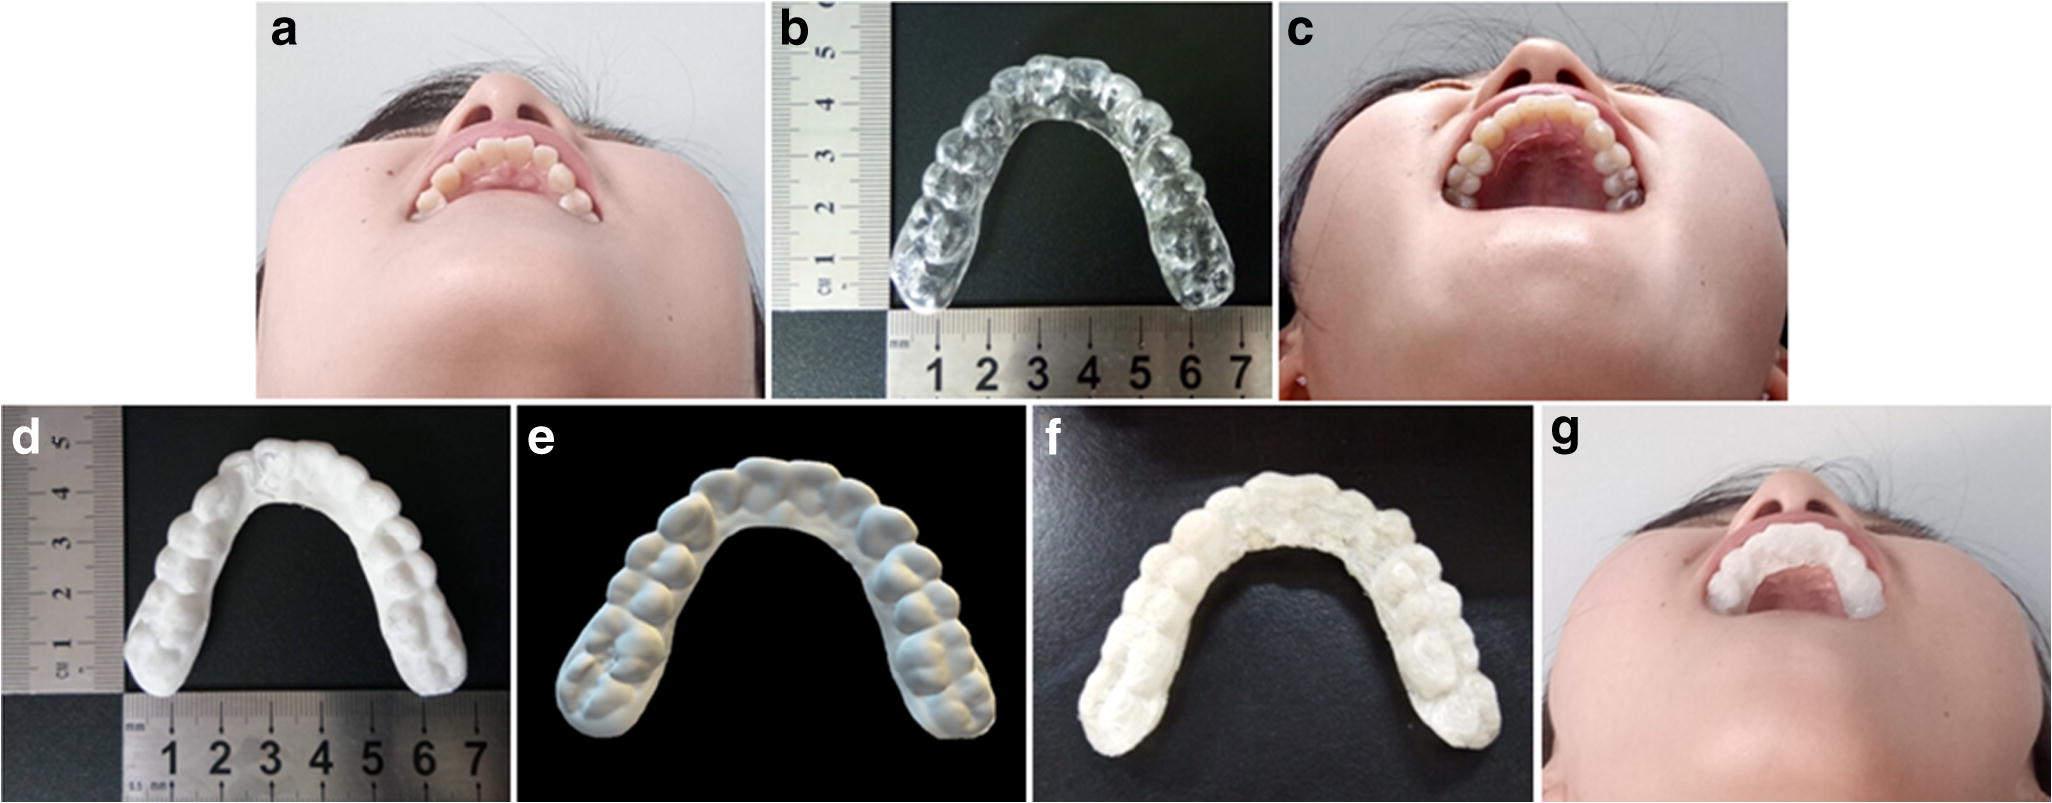 3D-Printed Wearable Personalized Orthodontic Retainers for